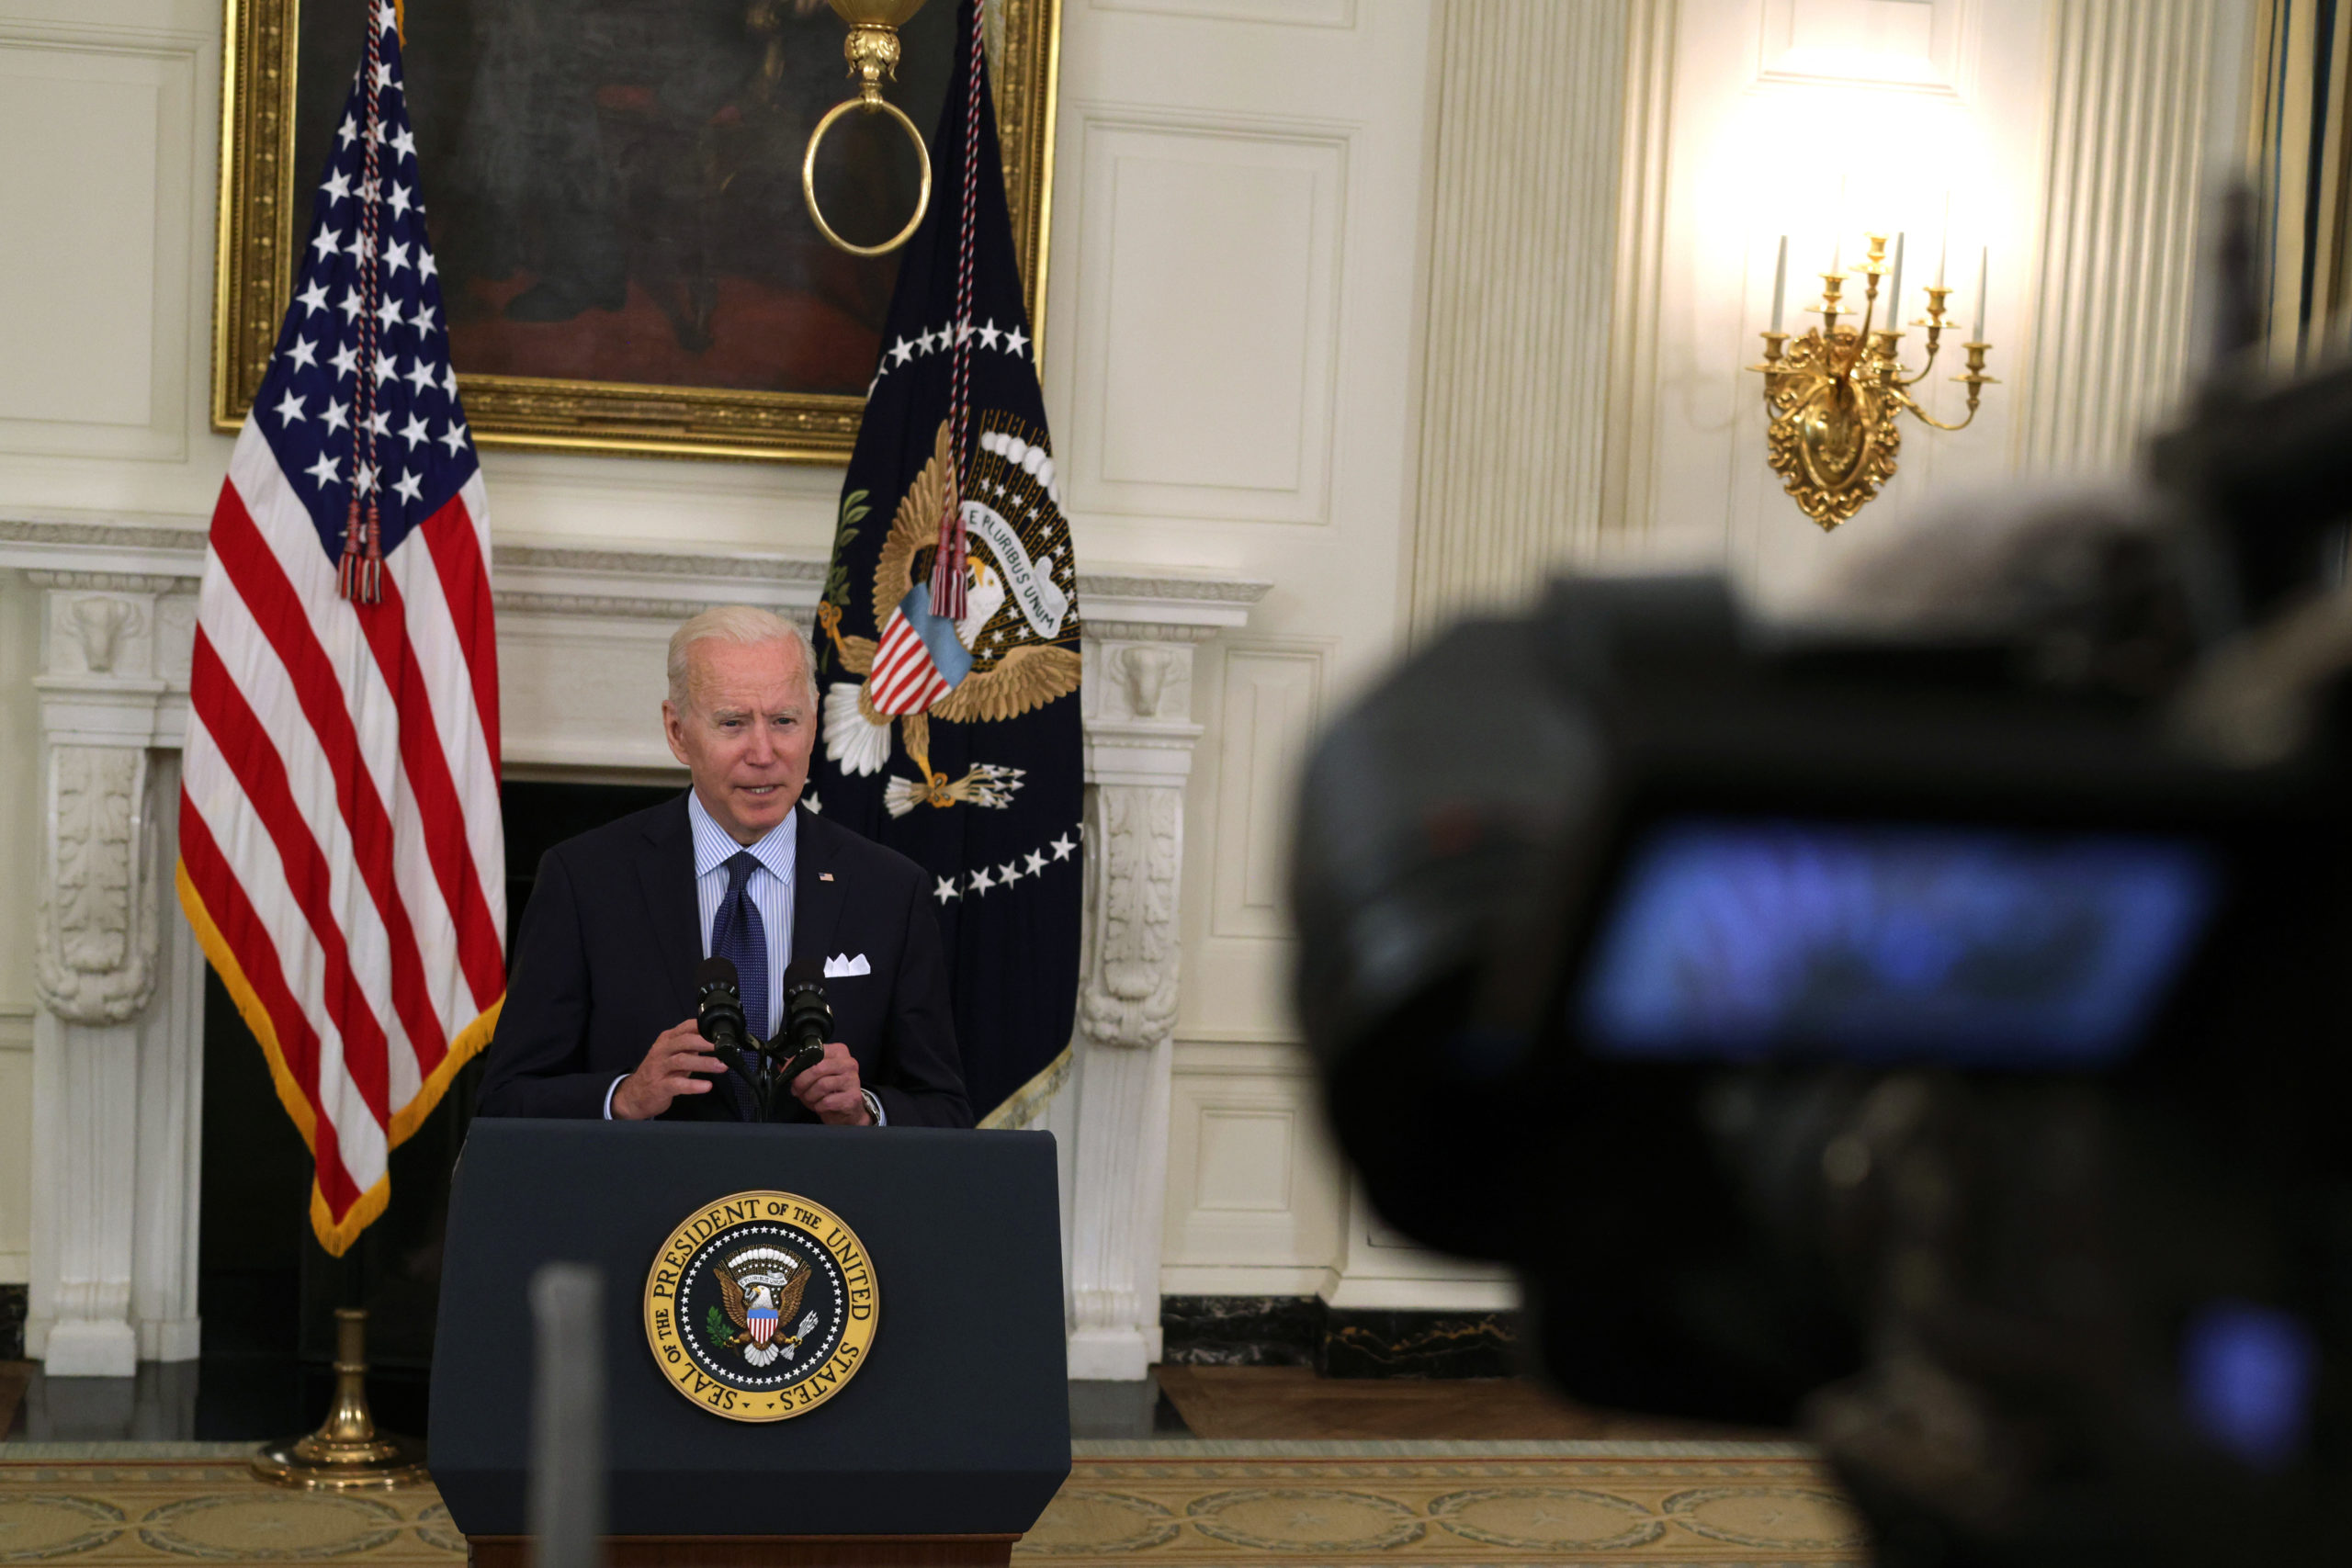 WASHINGTON, DC - MAY 04: U.S. President Joe Biden delivers remarks on the COVID-19 response and the vaccination program during an event at the State Dining Room of the White House May 4, 2021 in Washington, DC. President Biden set a new goal to have 70% of adult Americans with at least one shot and at least 160 Americans fully vaccinated by July 4th, 2021. (Photo by Alex Wong/Getty Images)